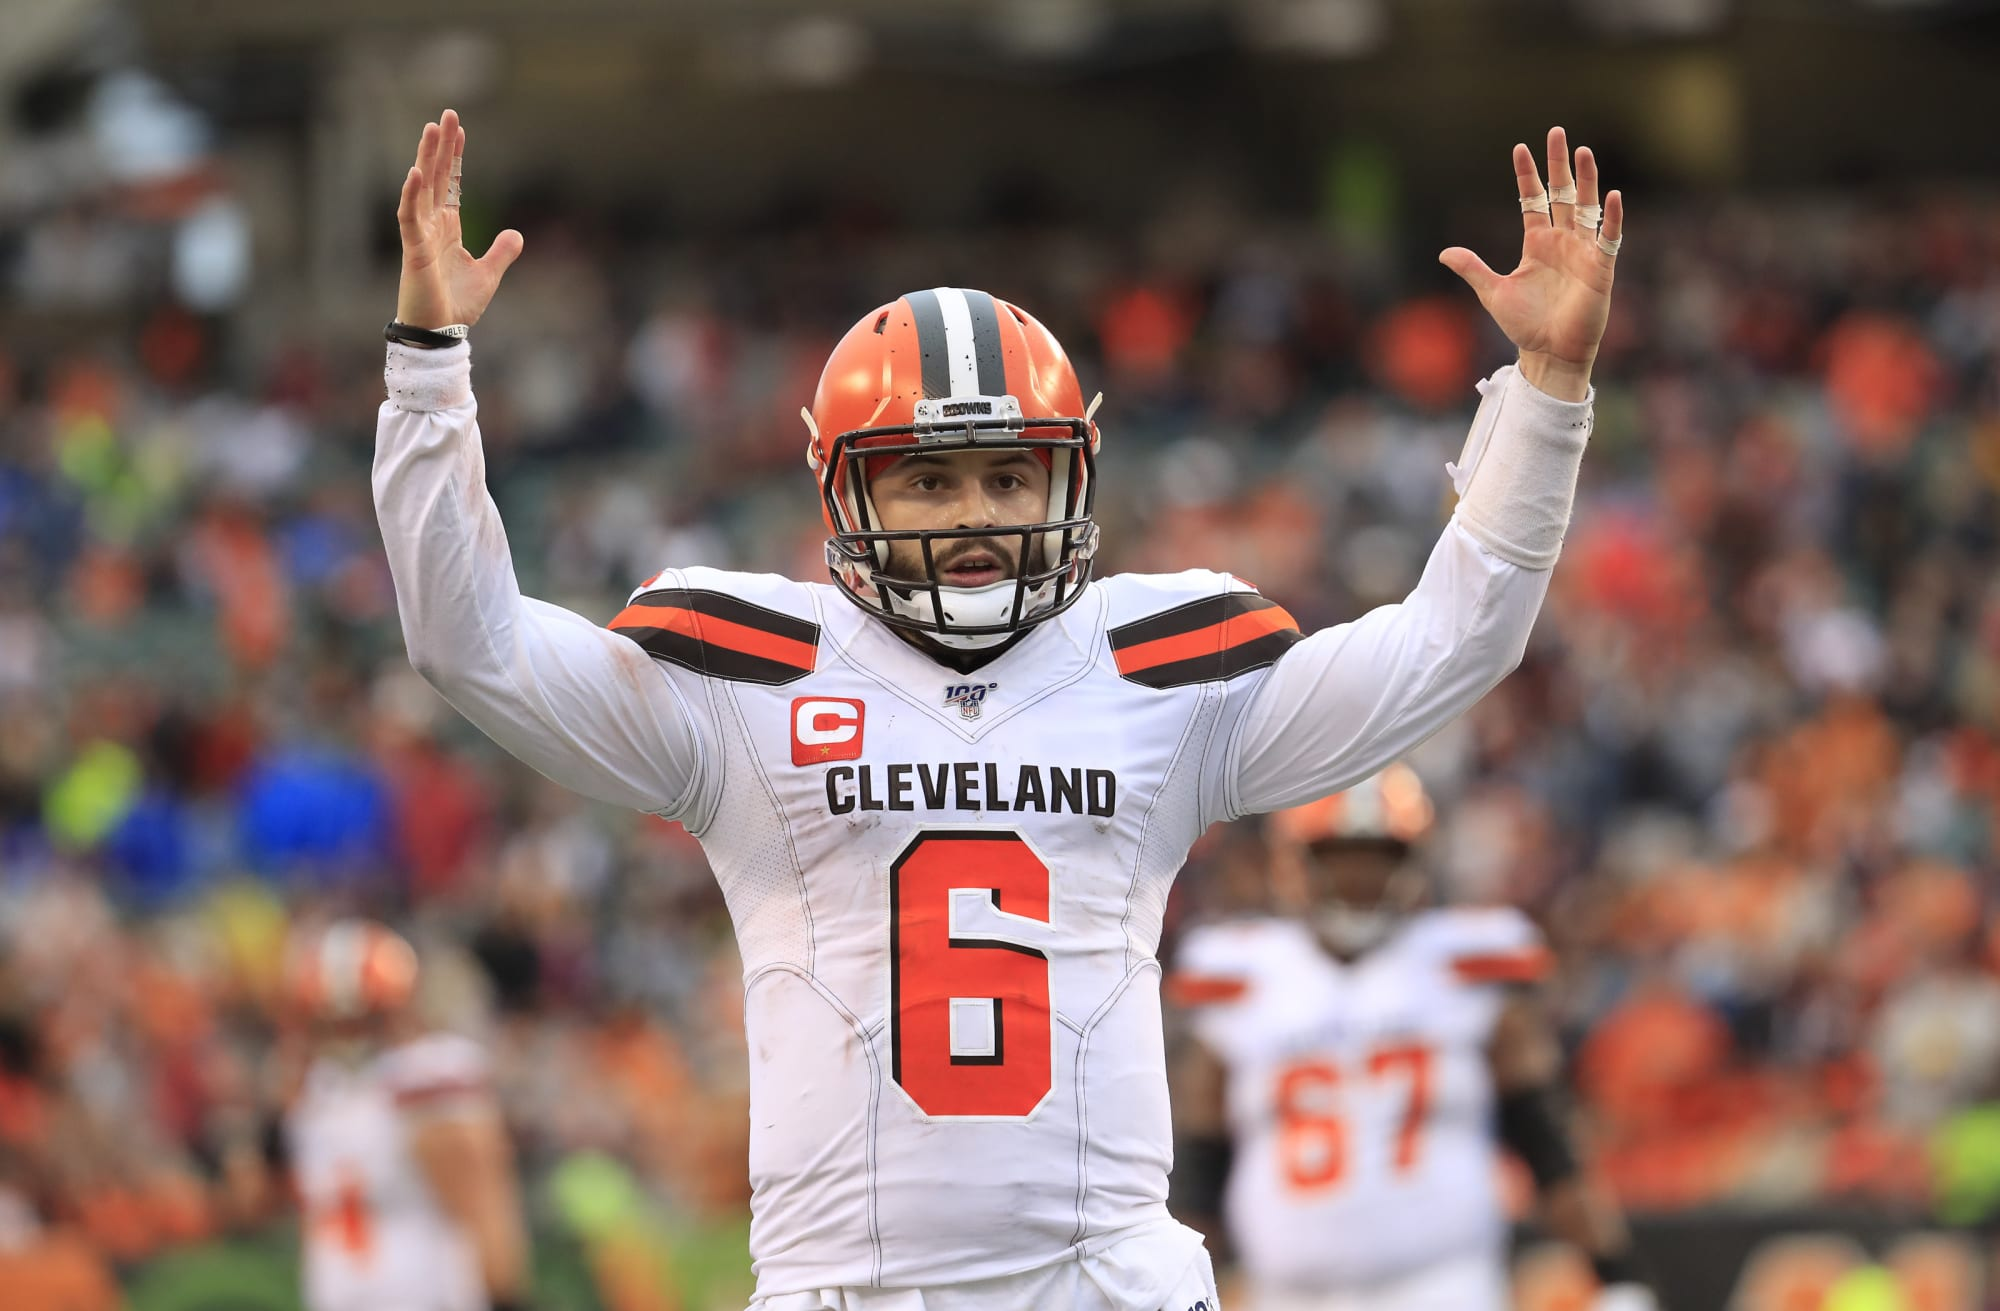 Baker Mayfield has 130 million reasons to show out for Browns in 2020